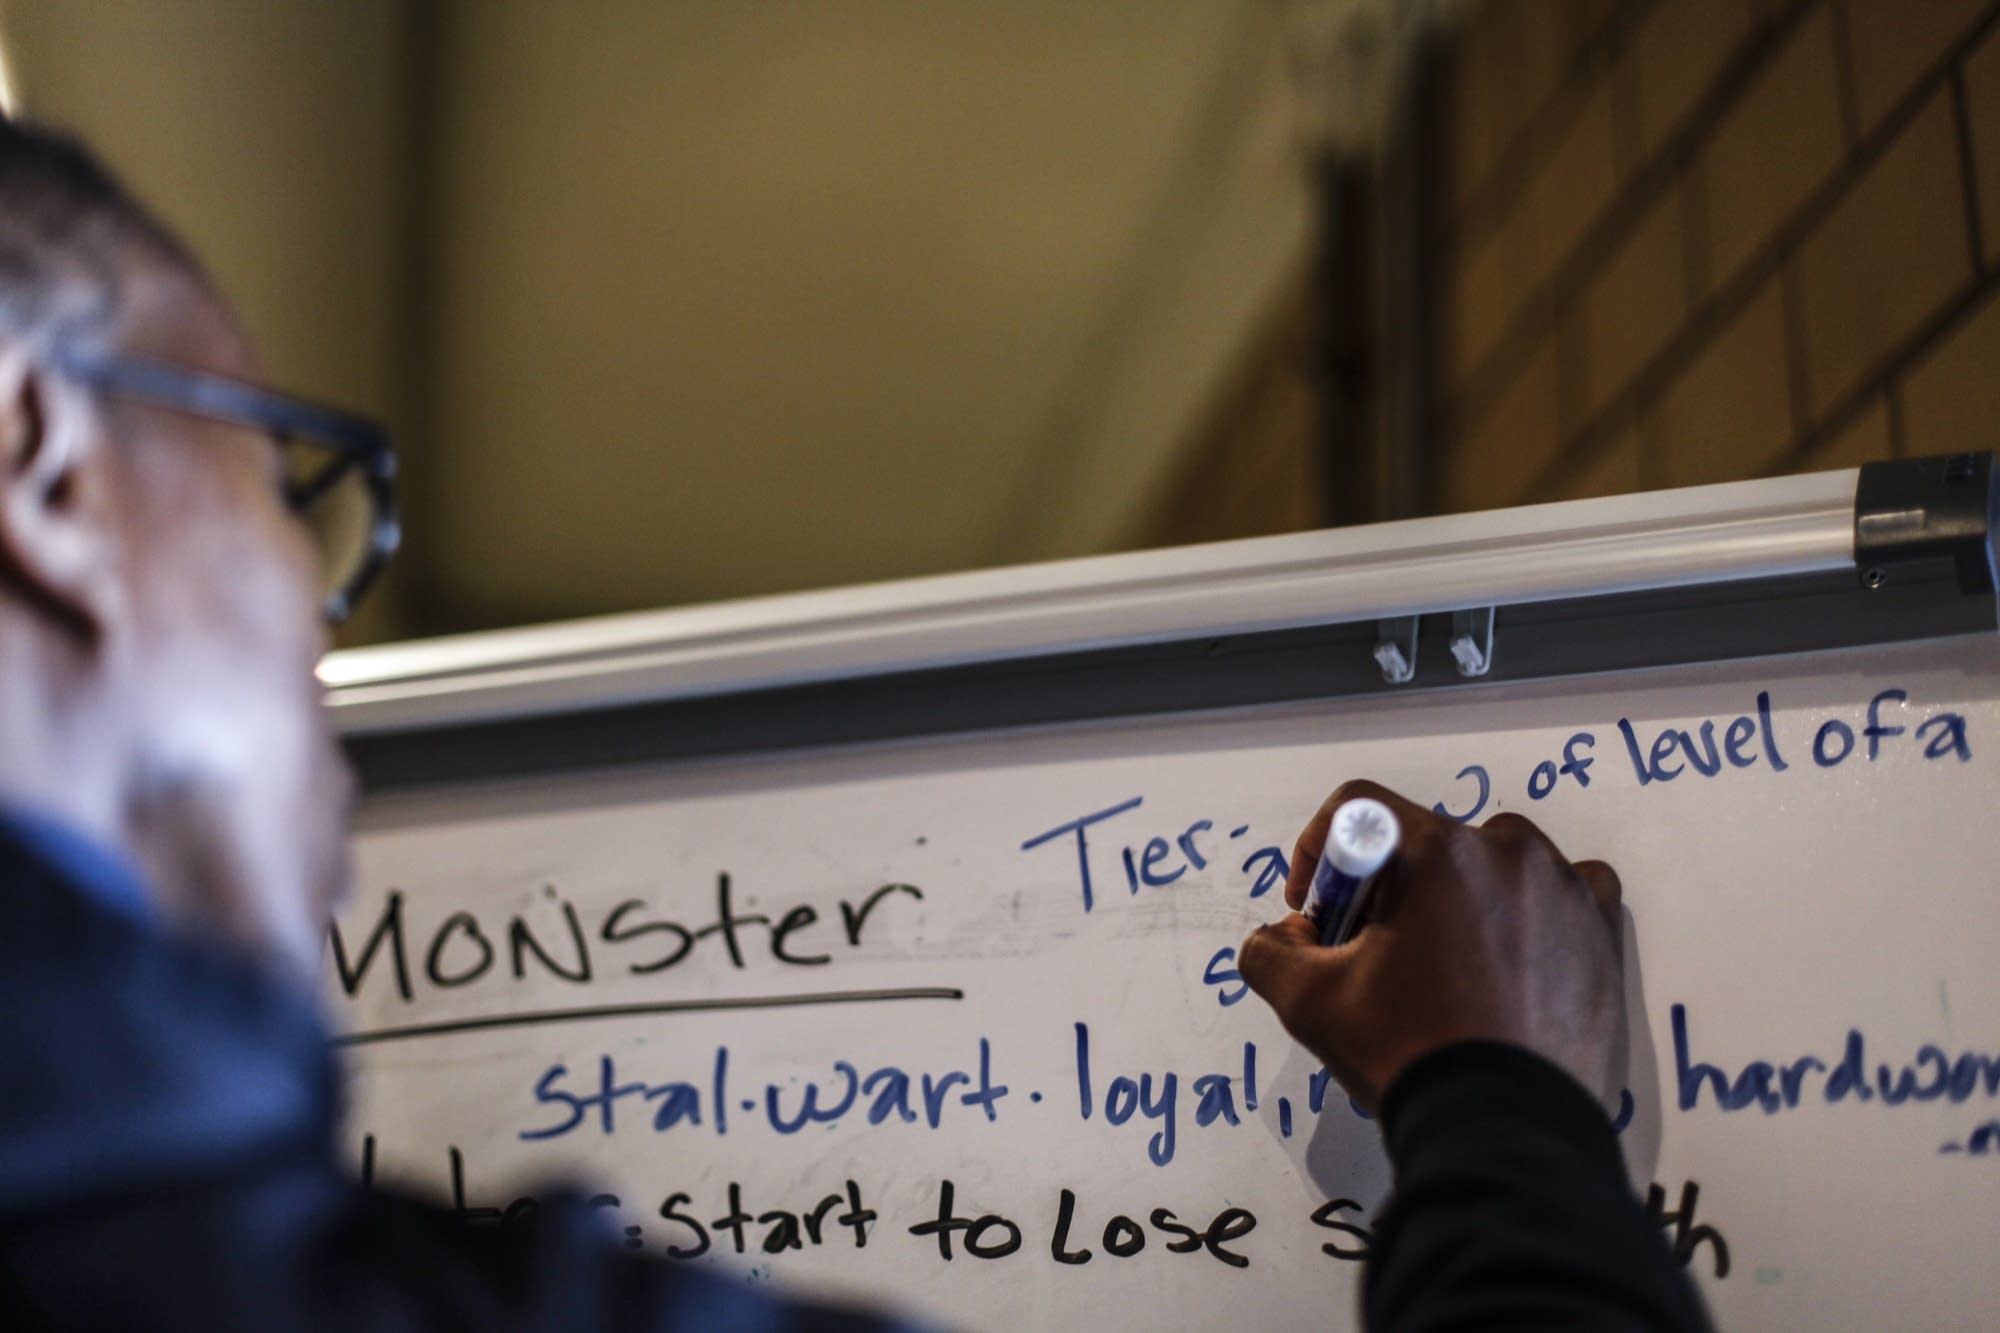 Morgan McDonald Sr. writes terms on a whiteboard.